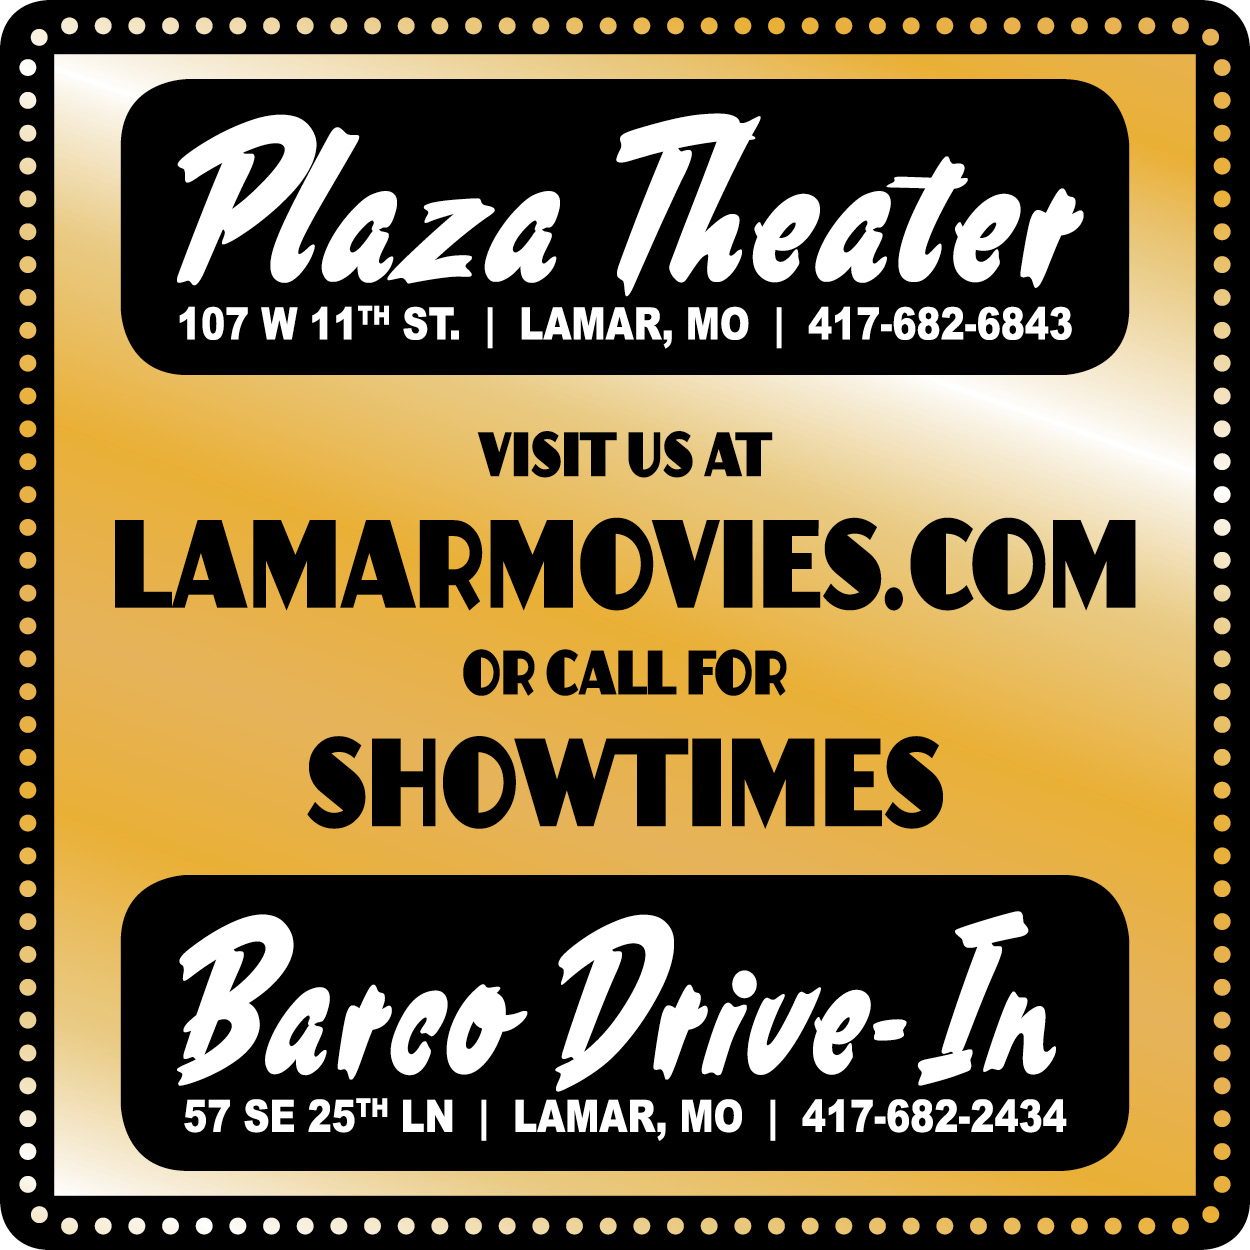 Plaza Theater & Barco Drive-In